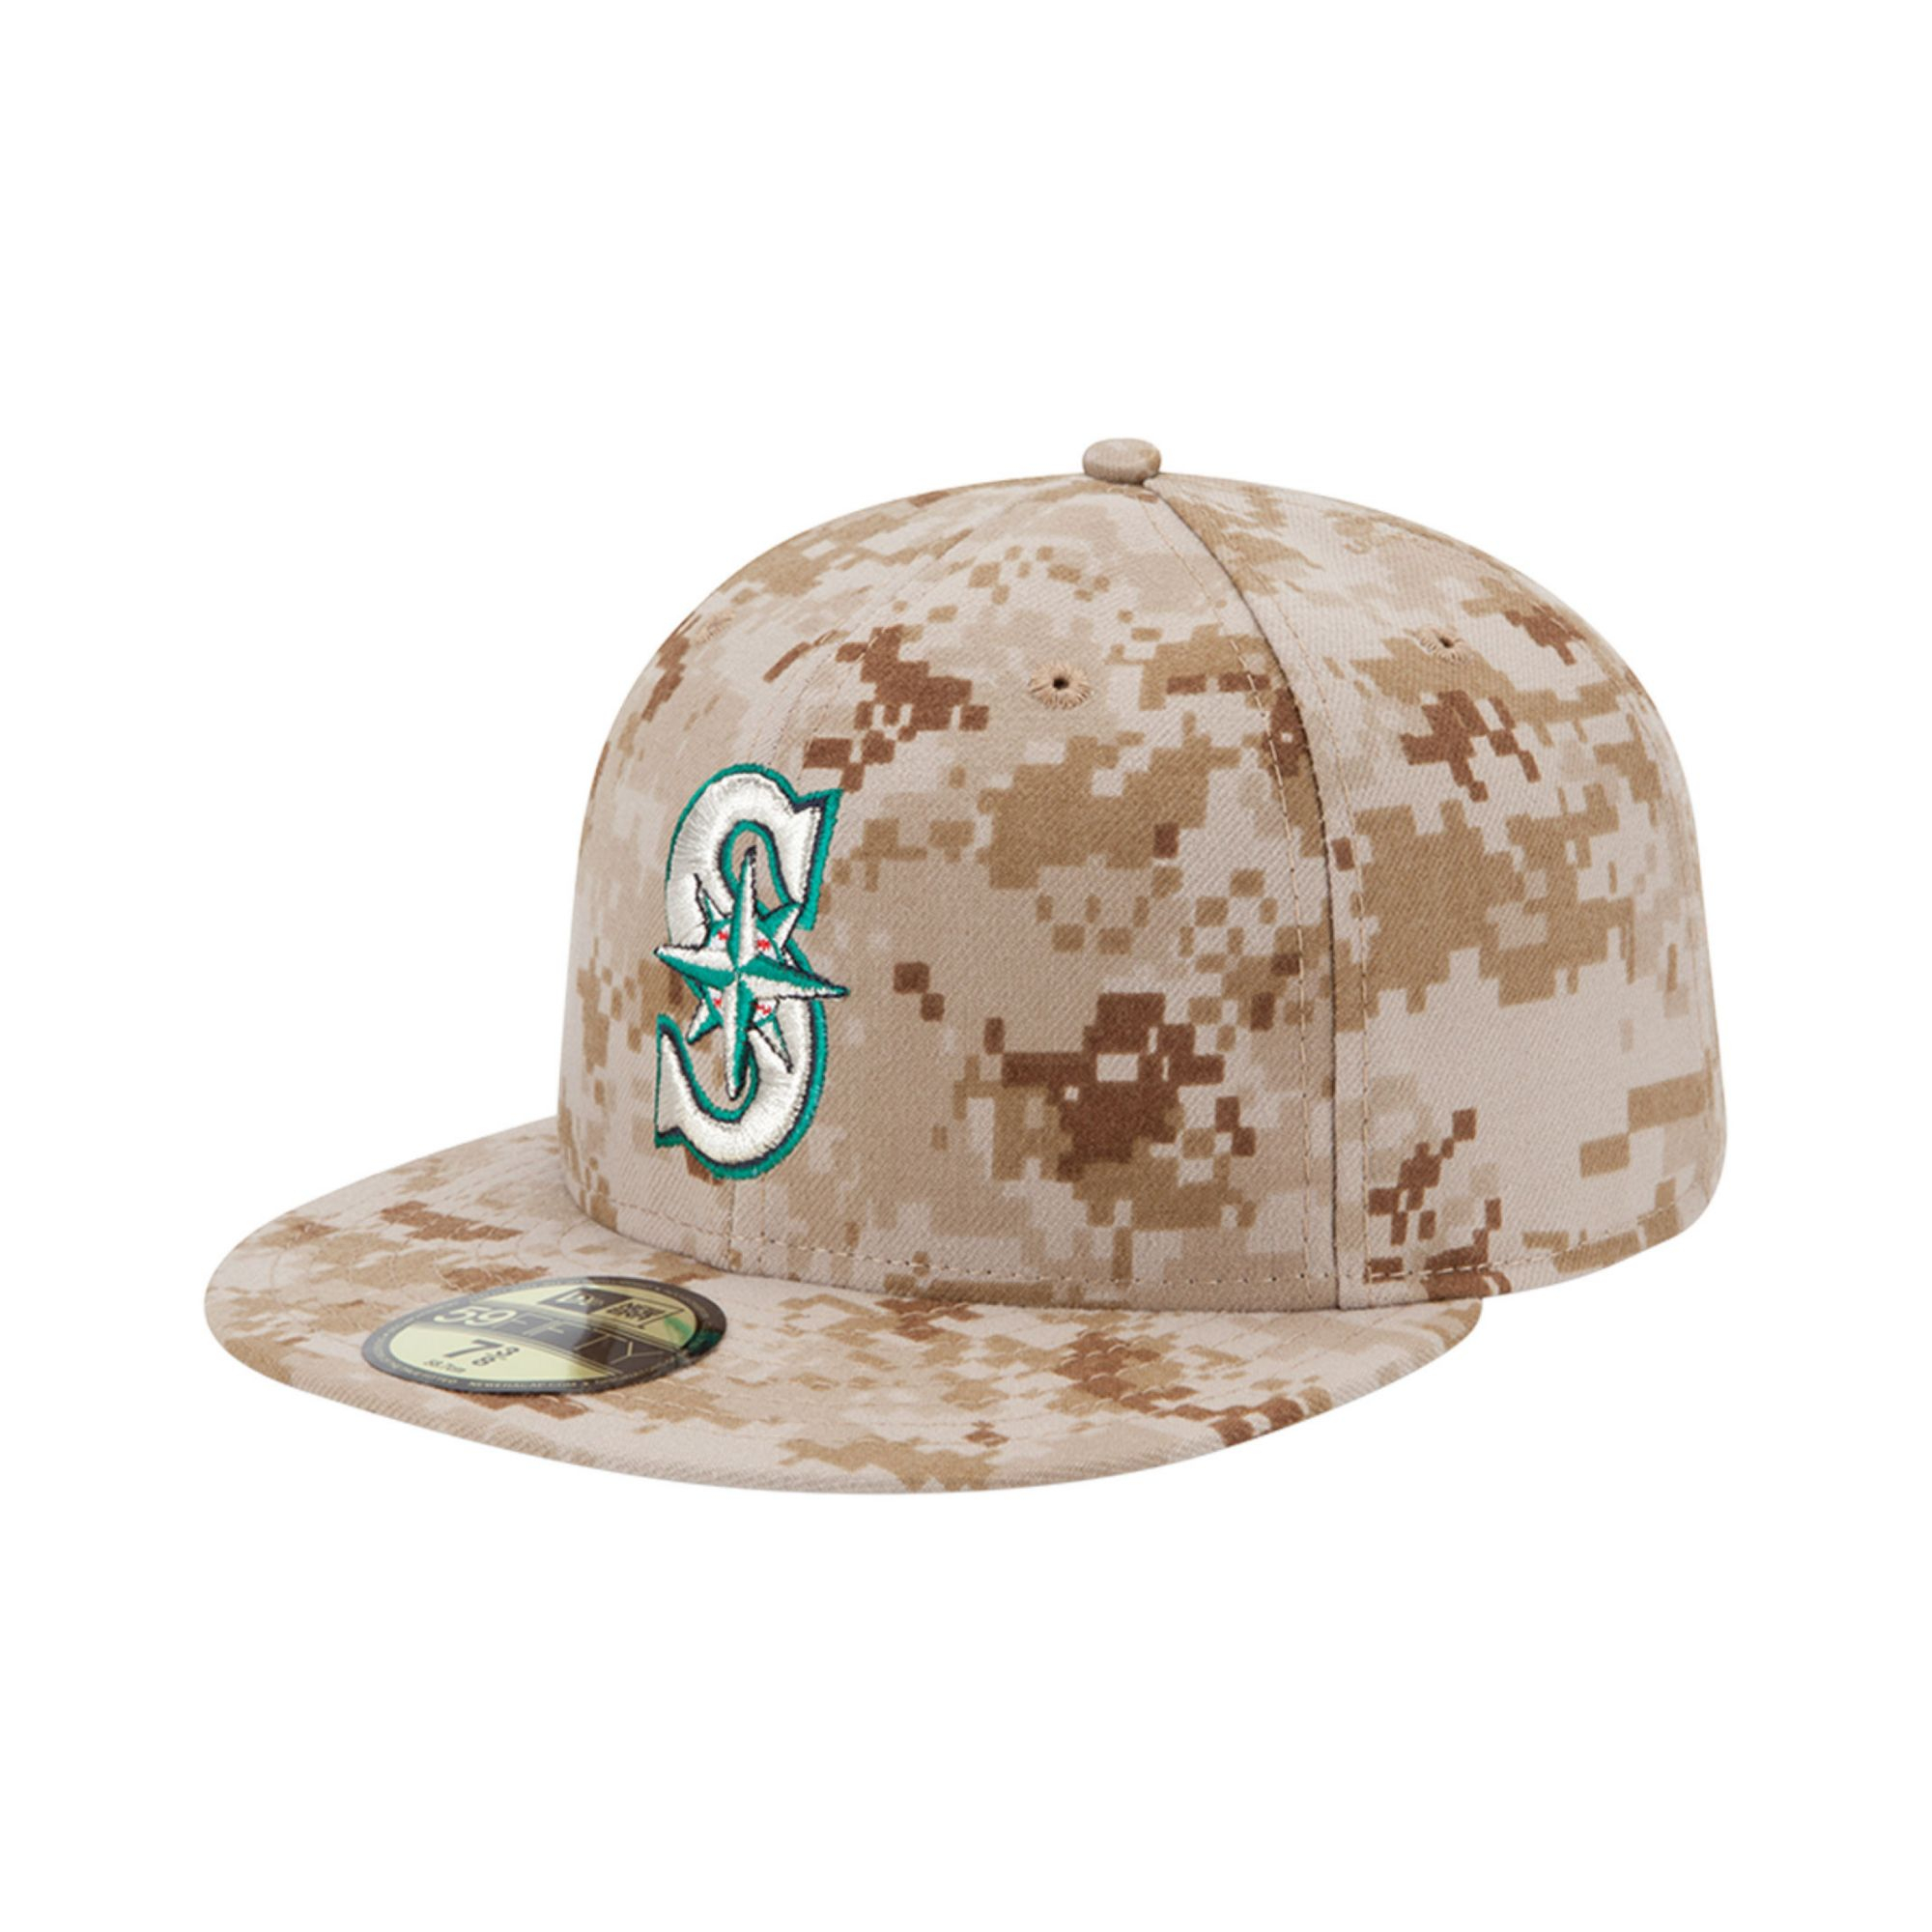 the best attitude c65fa e4ad5 KTZ Seattle Mariners Mlb Memorial Day Stars Stripes 59fifty Cap in ...